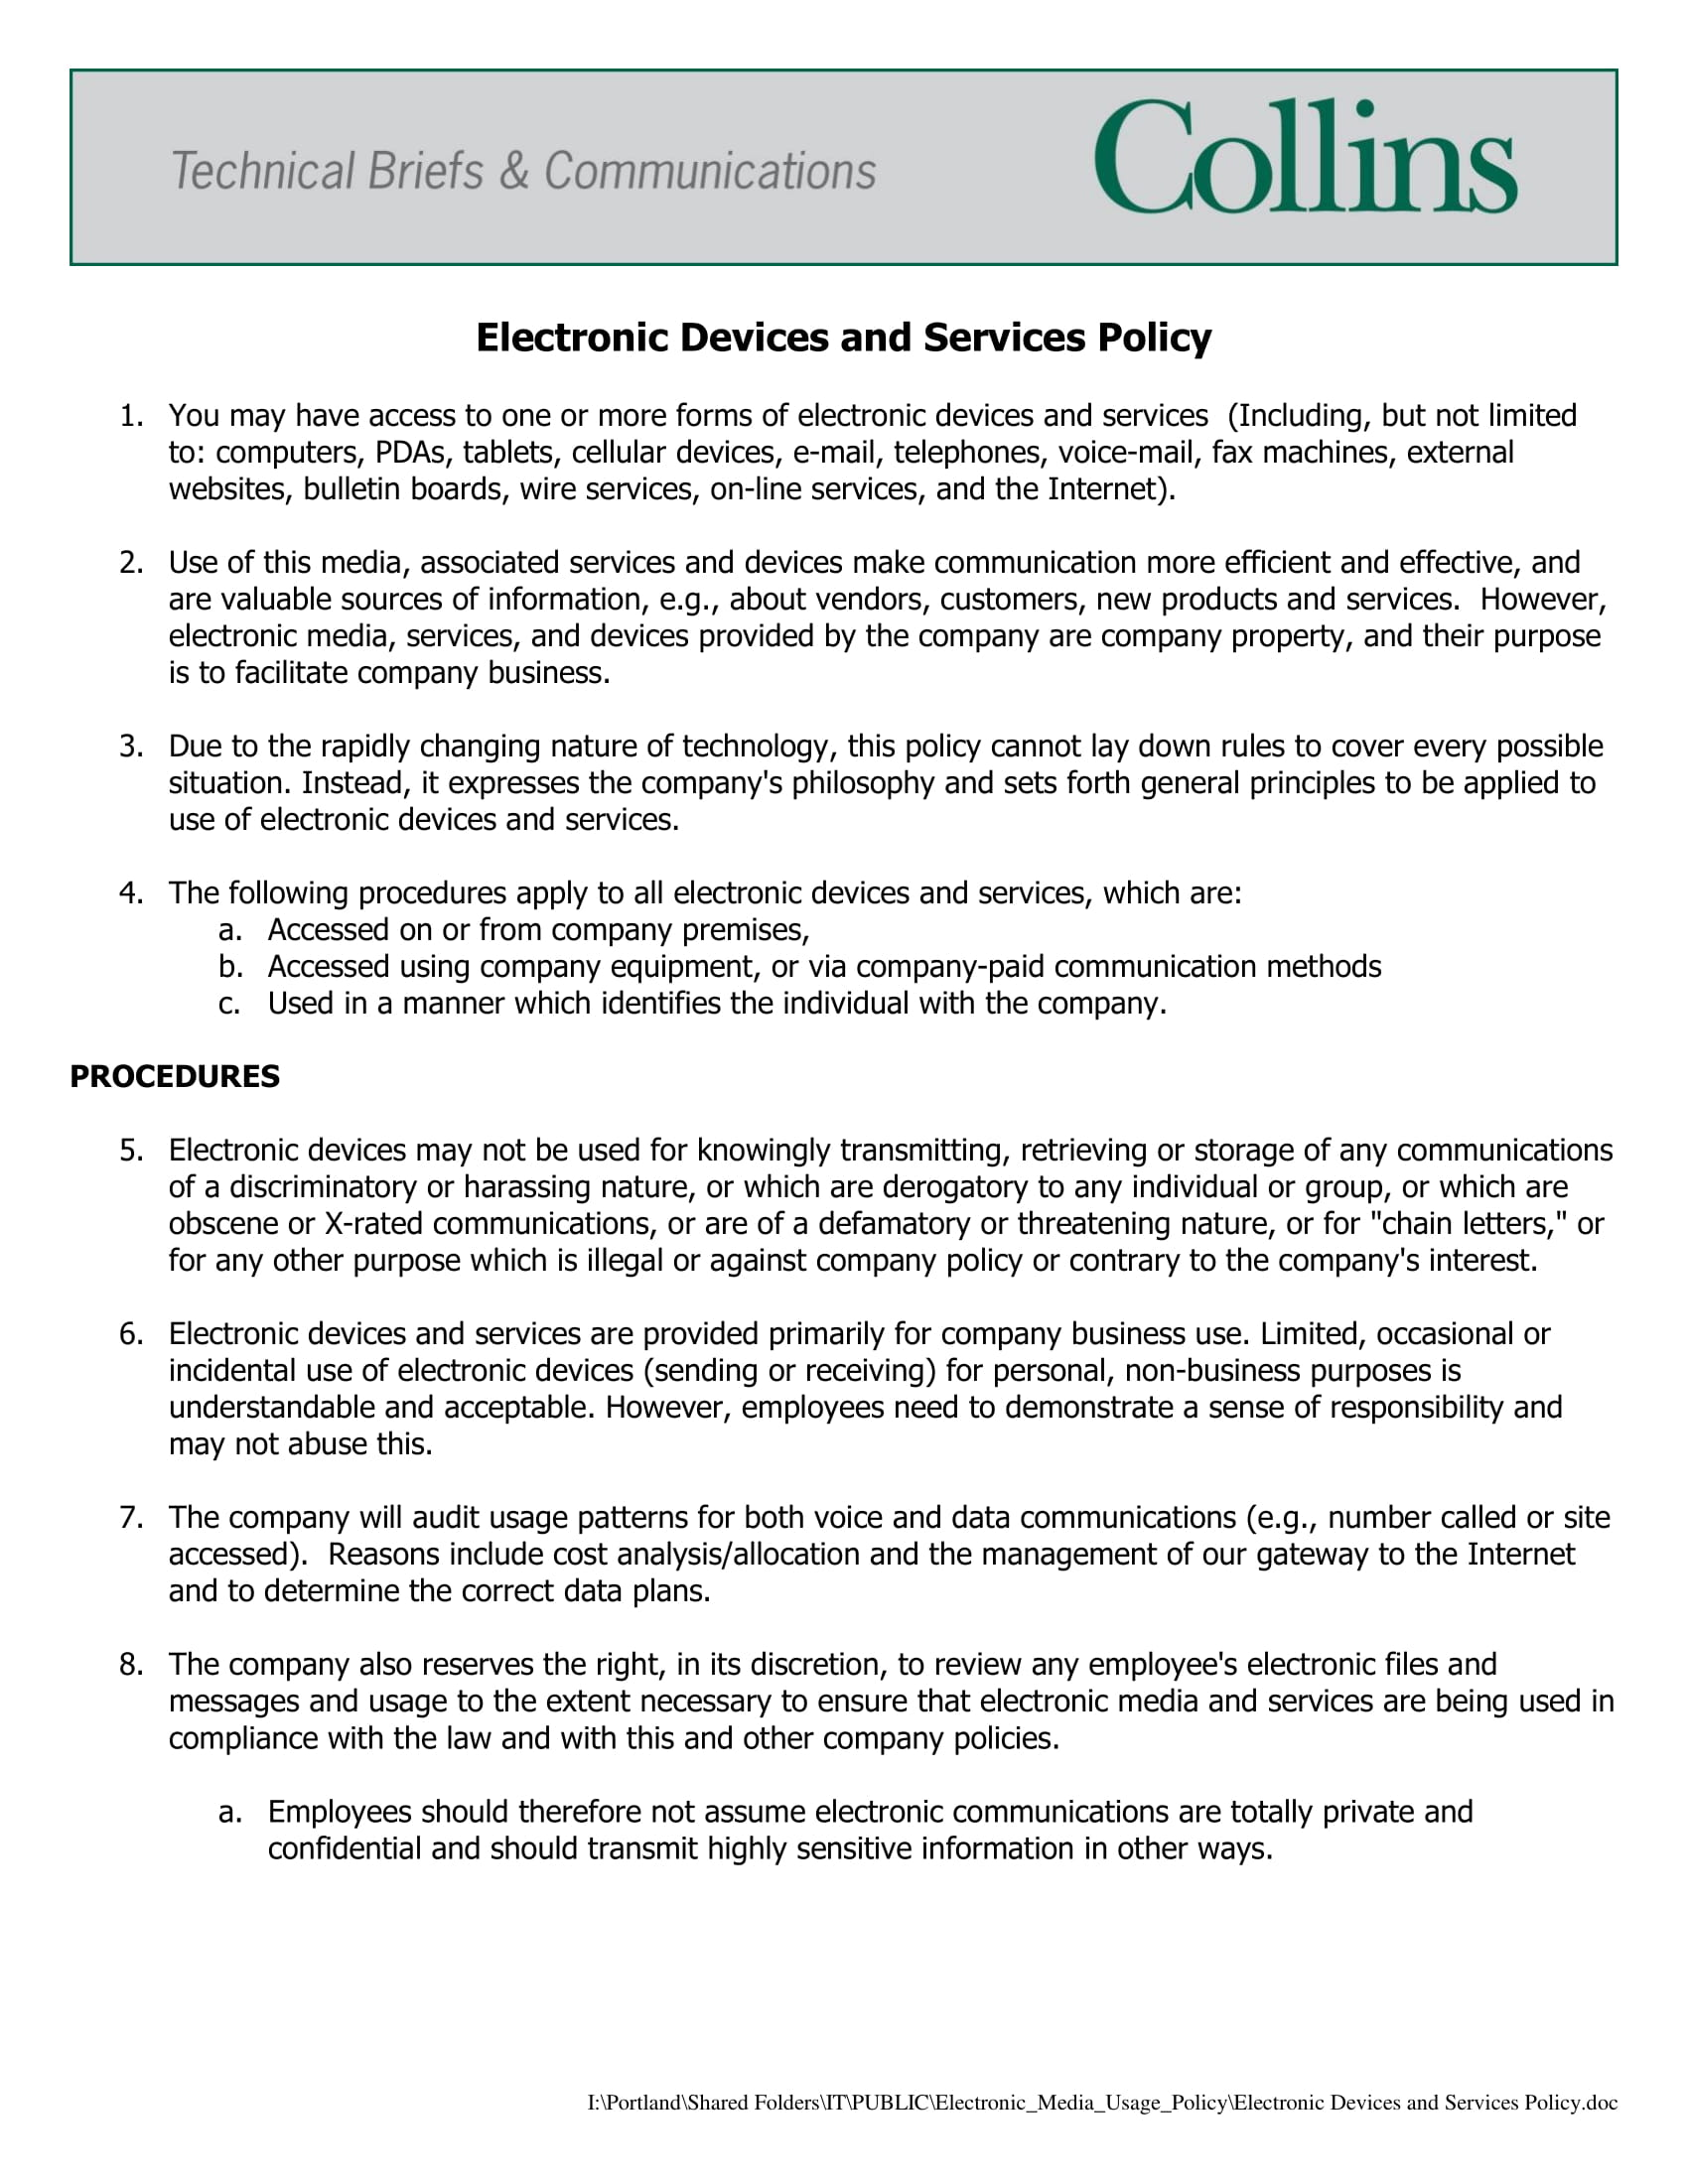 15 Employee Email Policy Examples